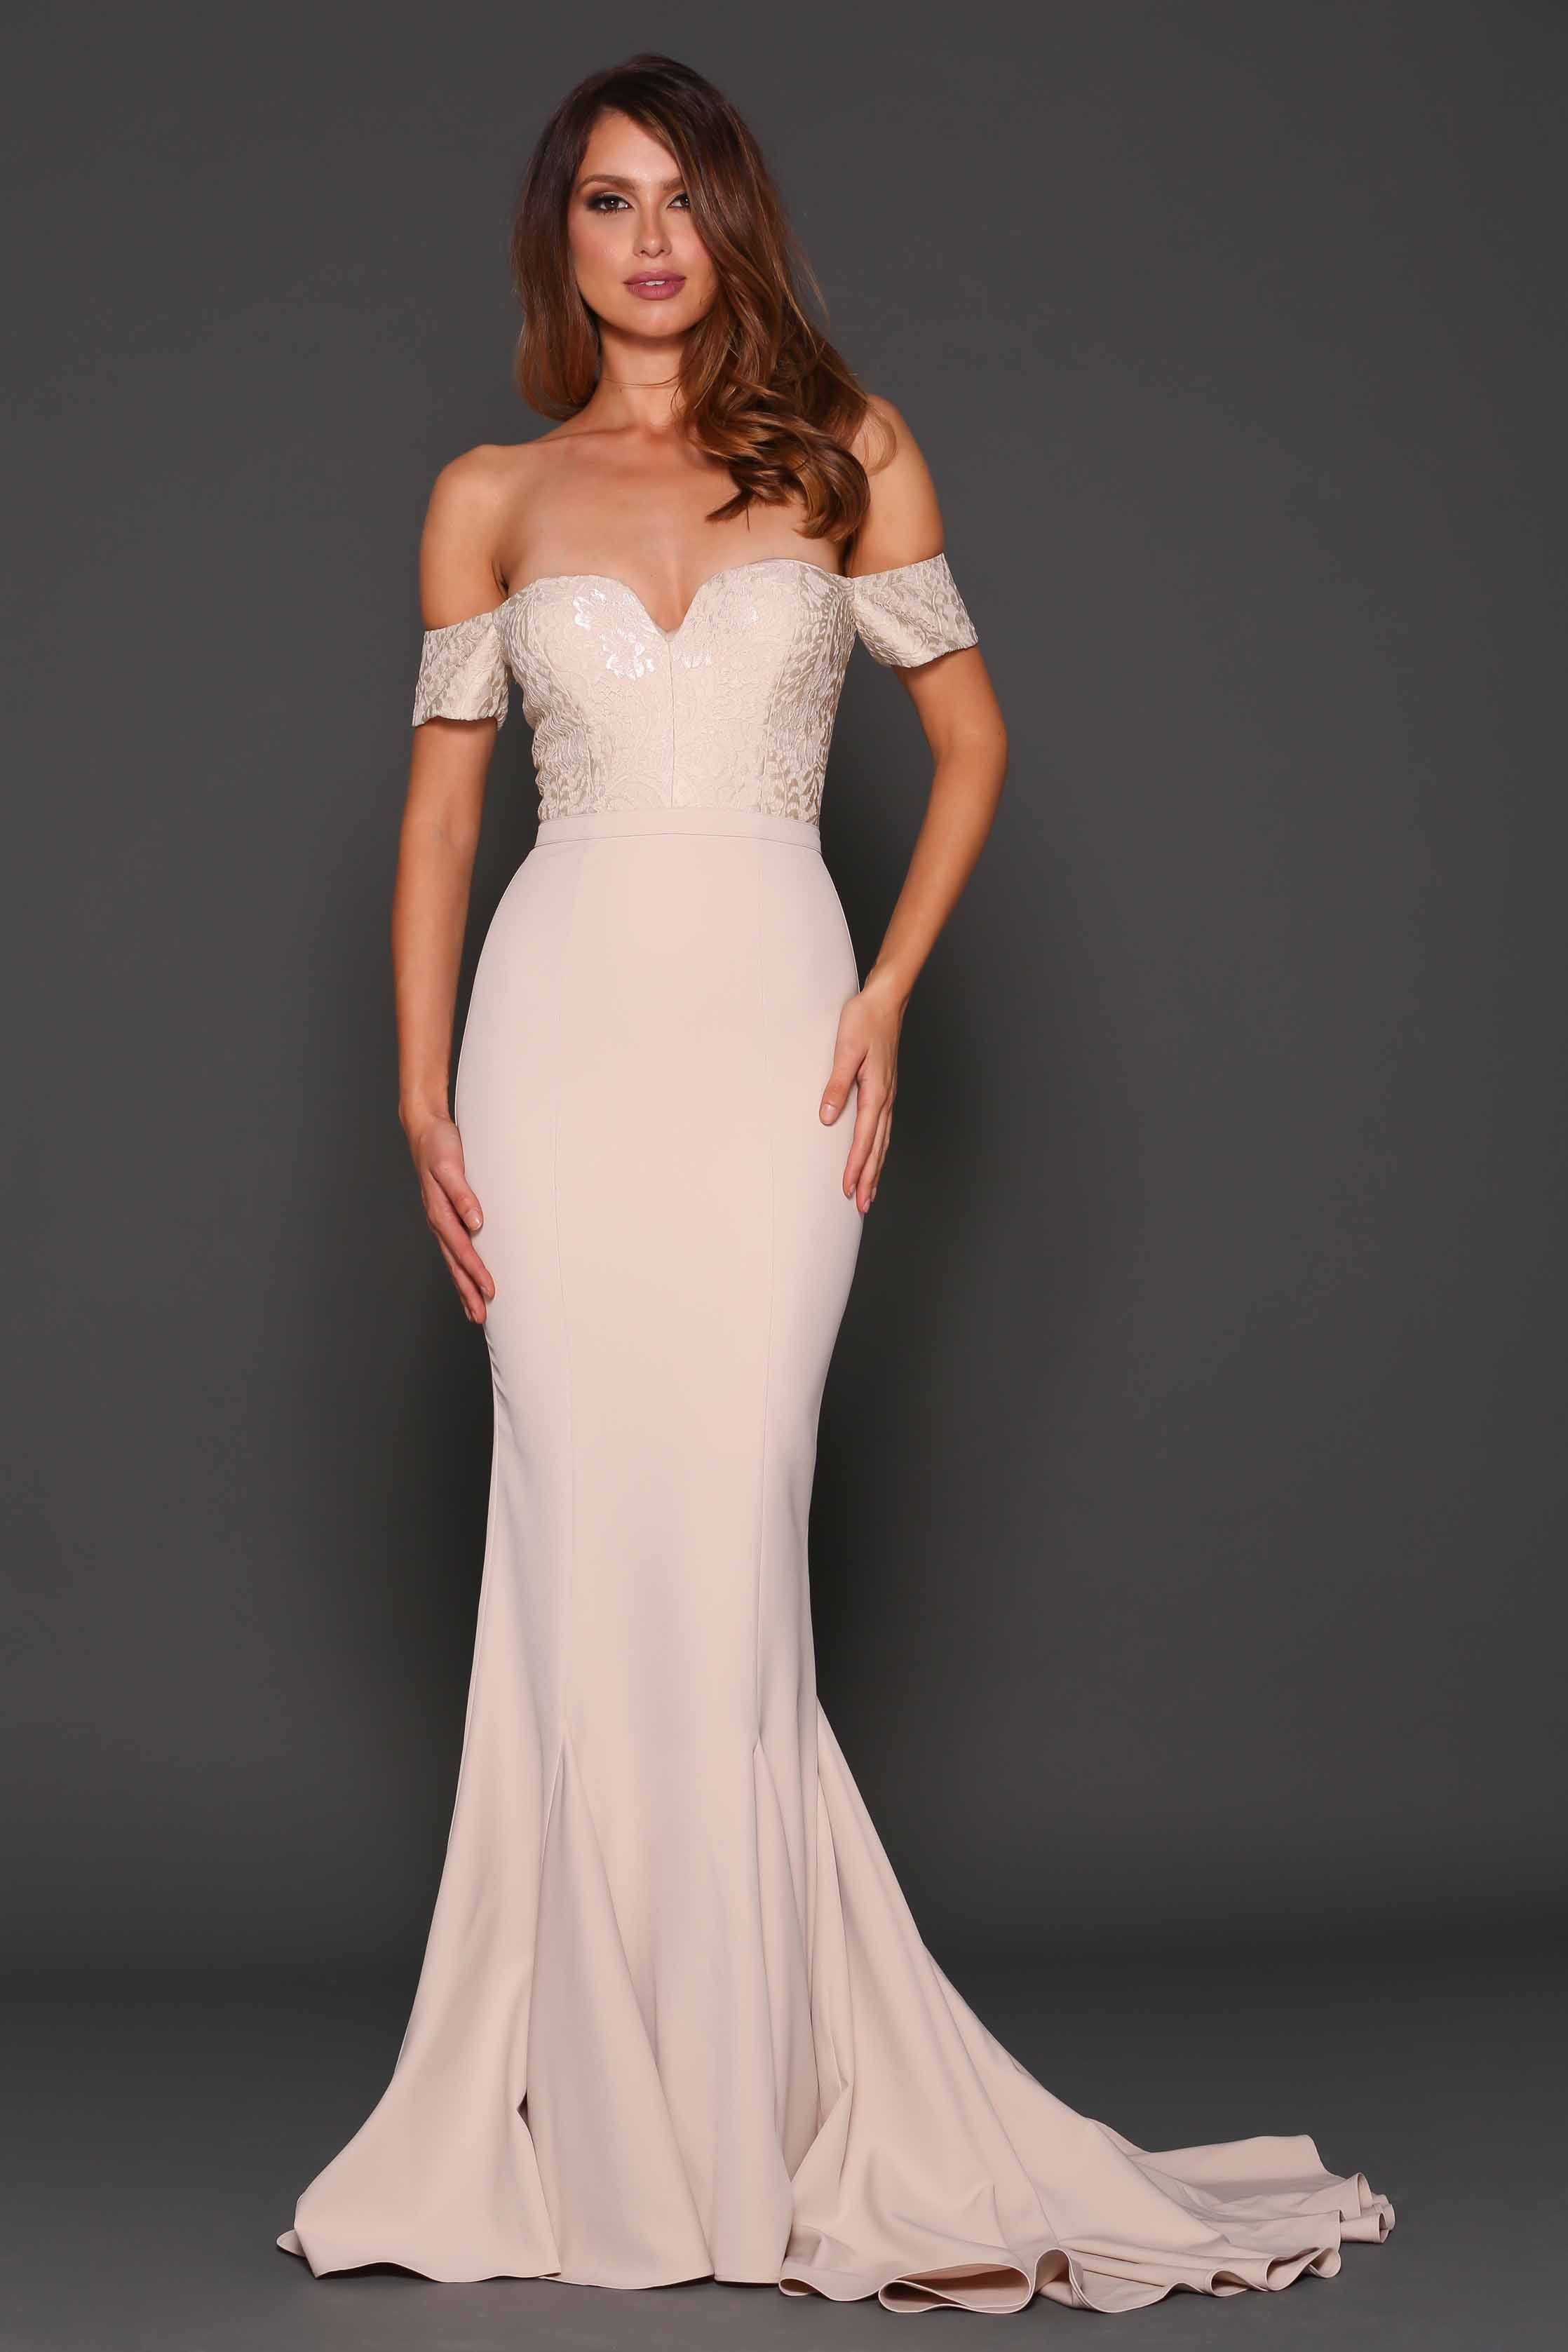 Dresses for wedding maids  Annabella gown  Gowns Formal and Maids